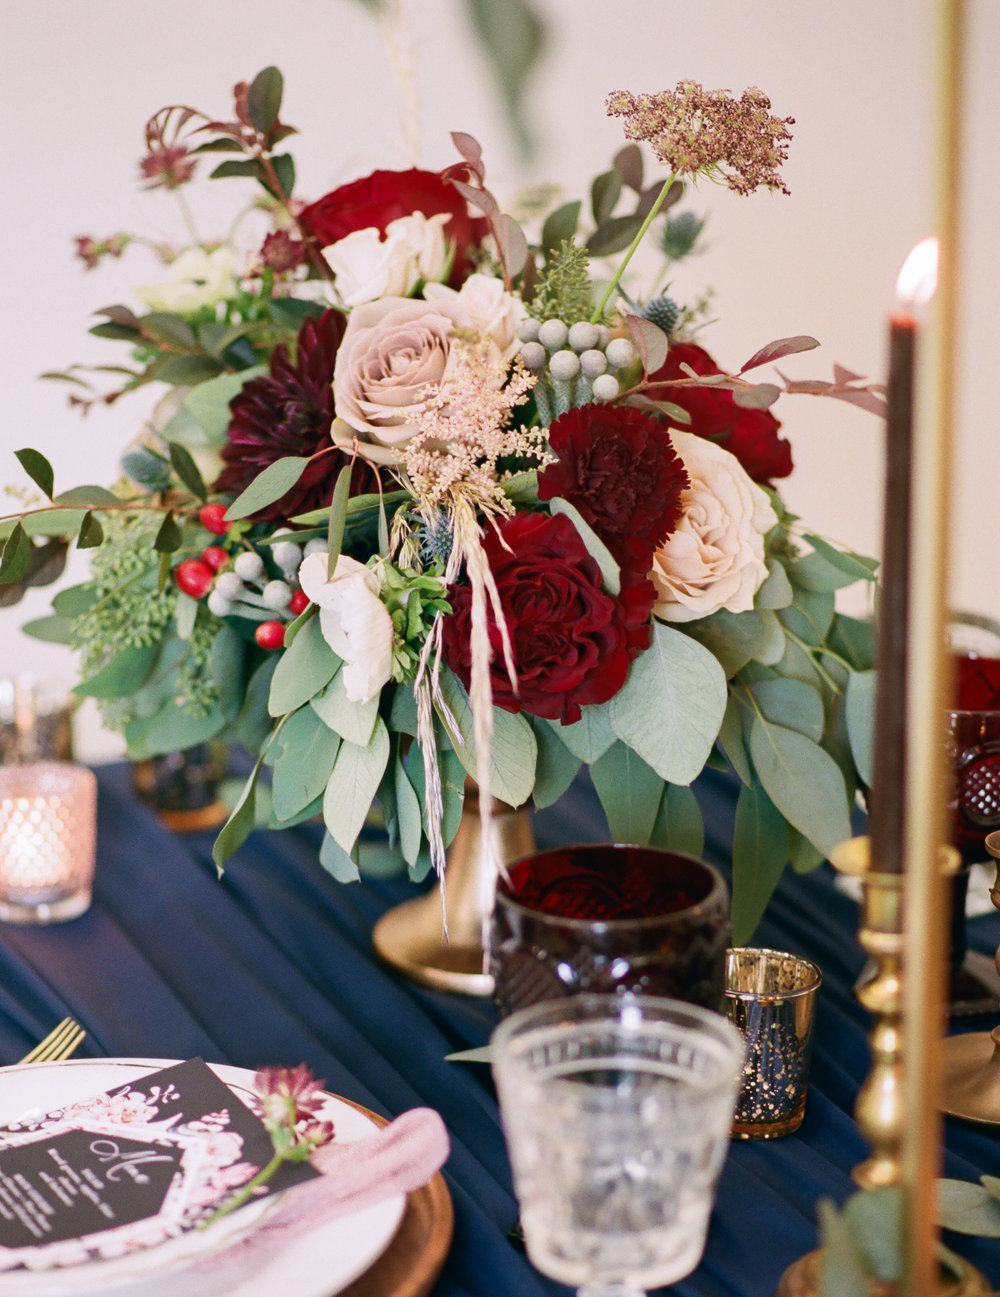 Burgundy and Mauve Centerpiece